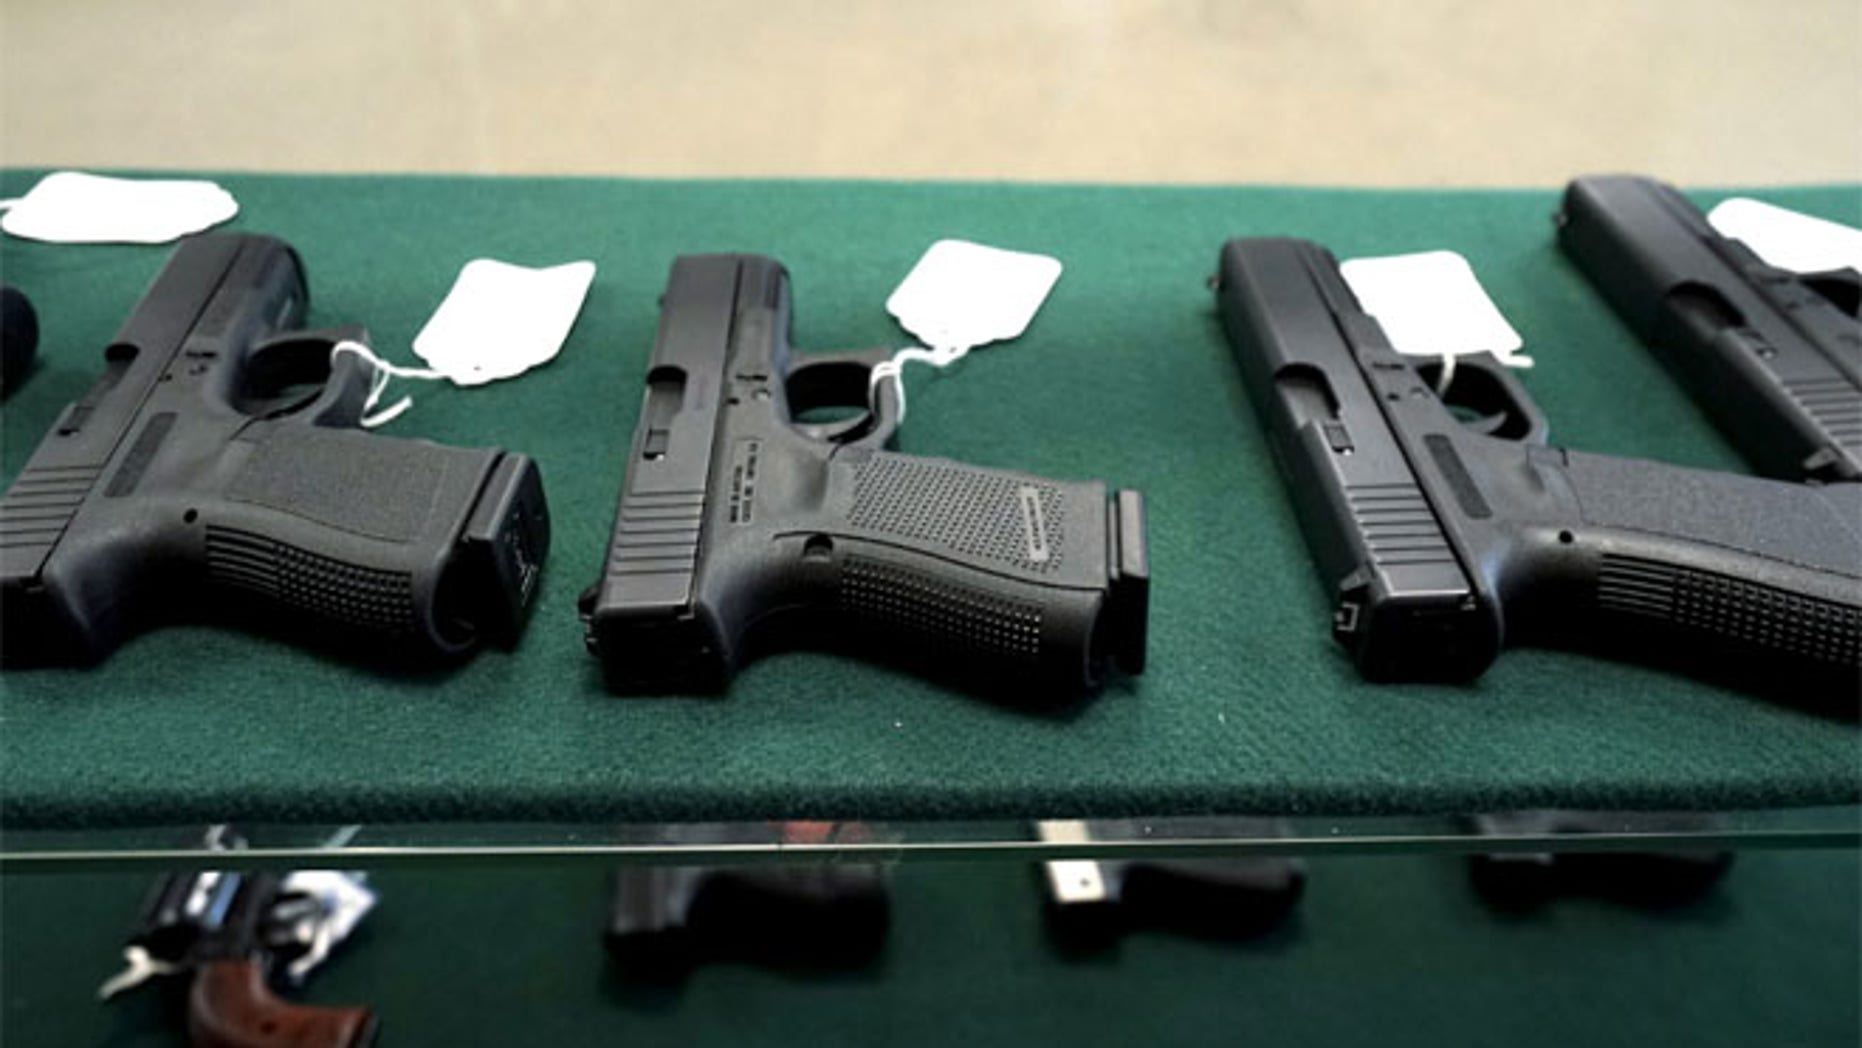 Over the decade ending in 2015, the number of U.S. companies licensed to make firearms jumped 362 percent.